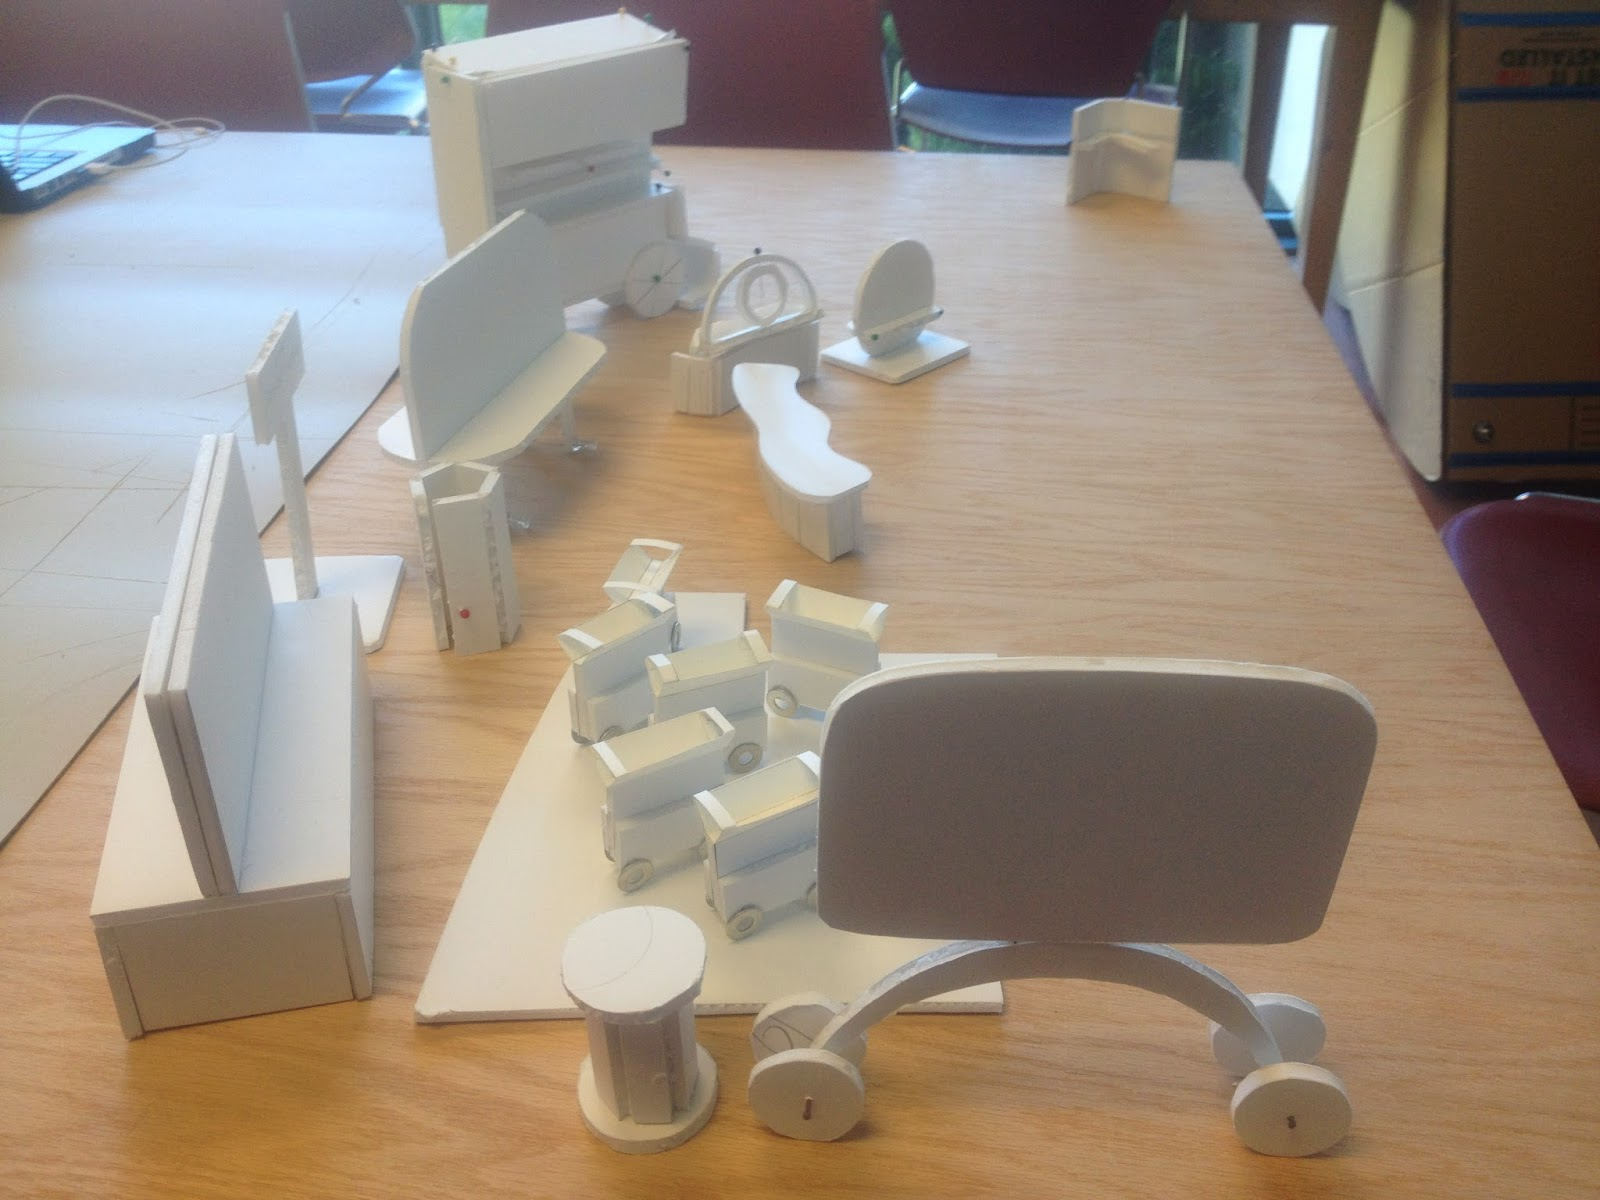 The image shows a side view of the white foam core model mockups grouped together on a table.